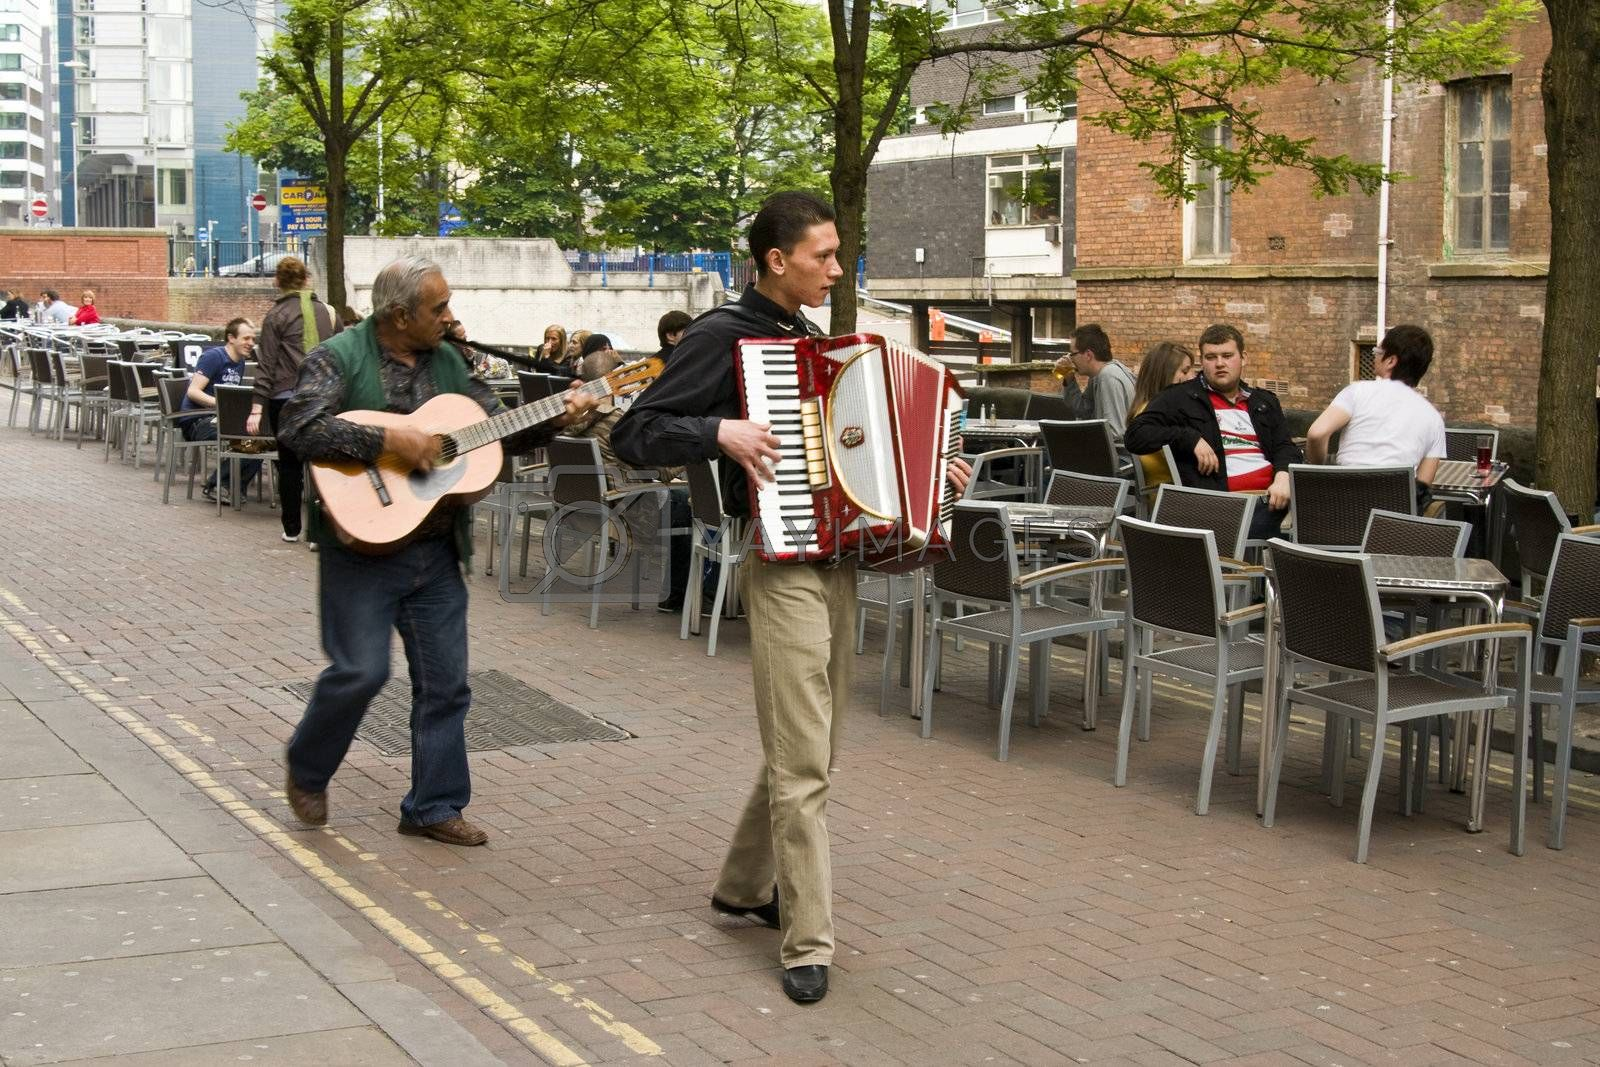 two Gipsy street performers playing guitar and accordion on canal street , Manchester, UK